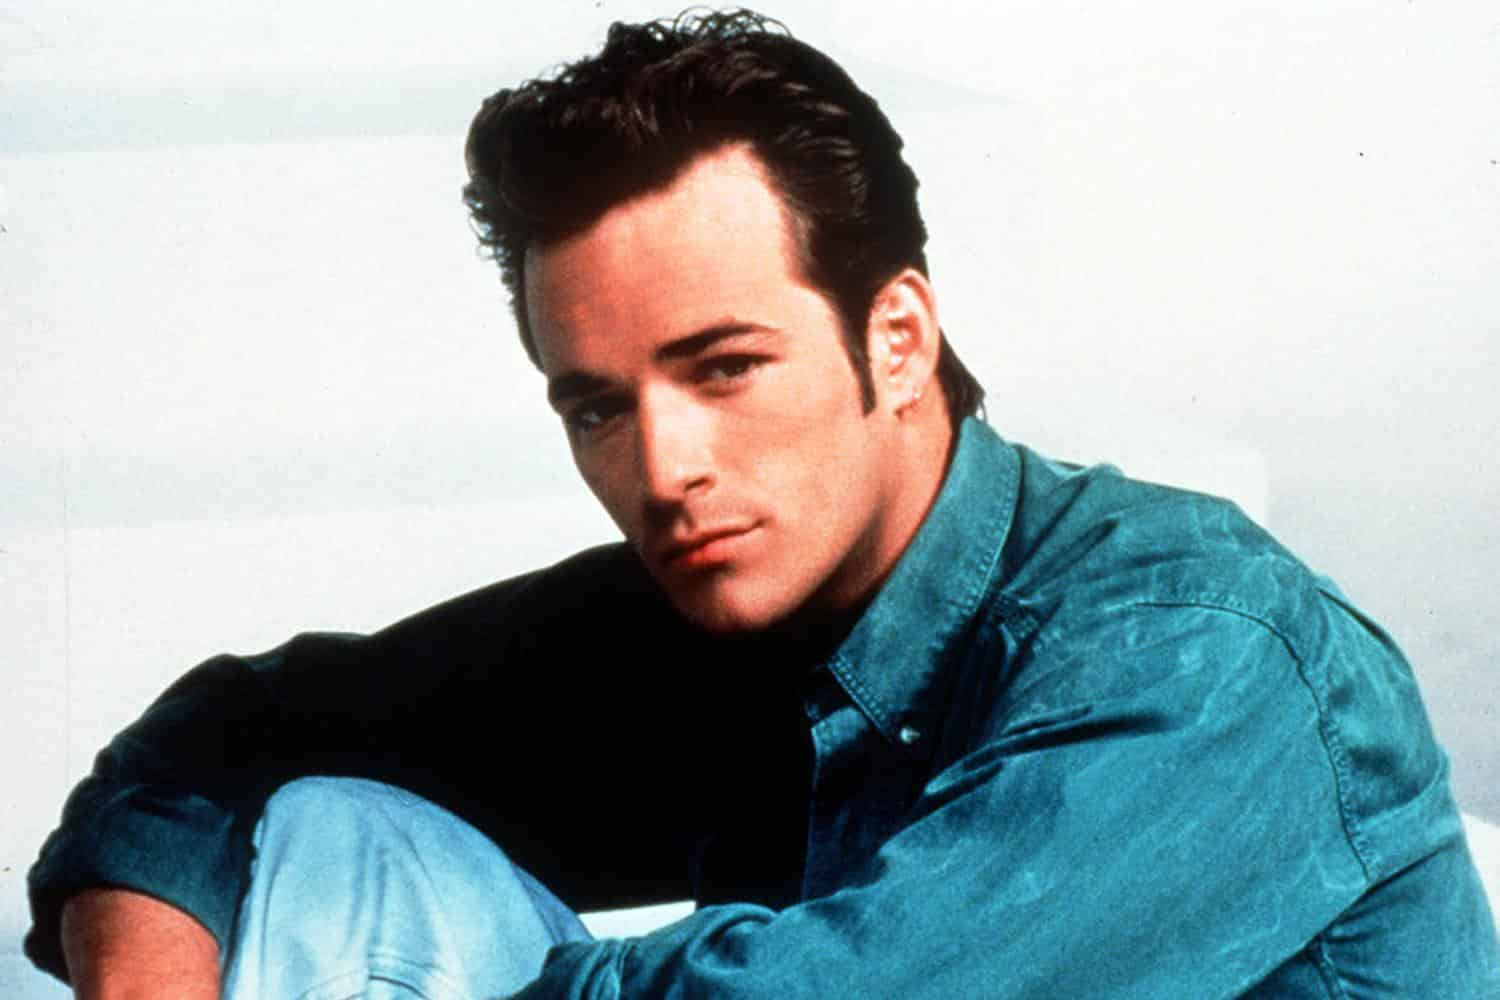 Fallece el actor Luke Perry por derrame cerebral